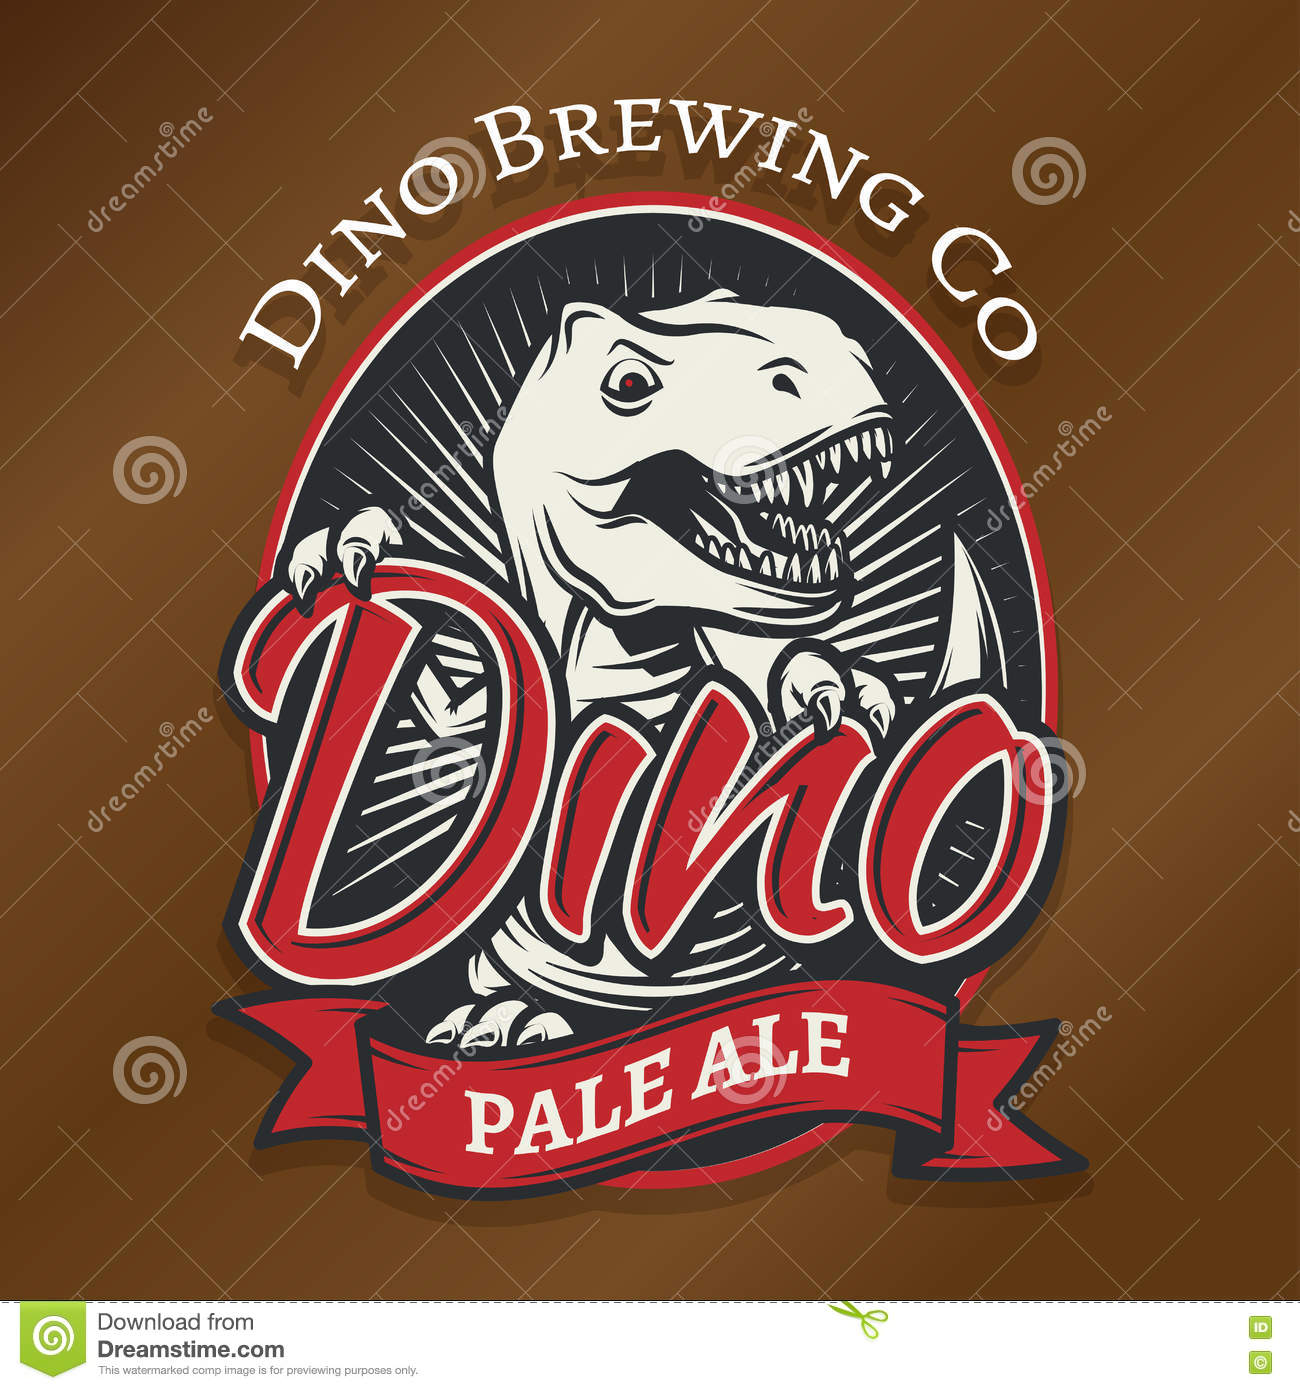 05b5180de Vector dino craft beer logo concept. T-rex bar insignia design. Pale ale  label template. Vintage Jurassic period illustration. Tyrannosaurus T-shirt  badge